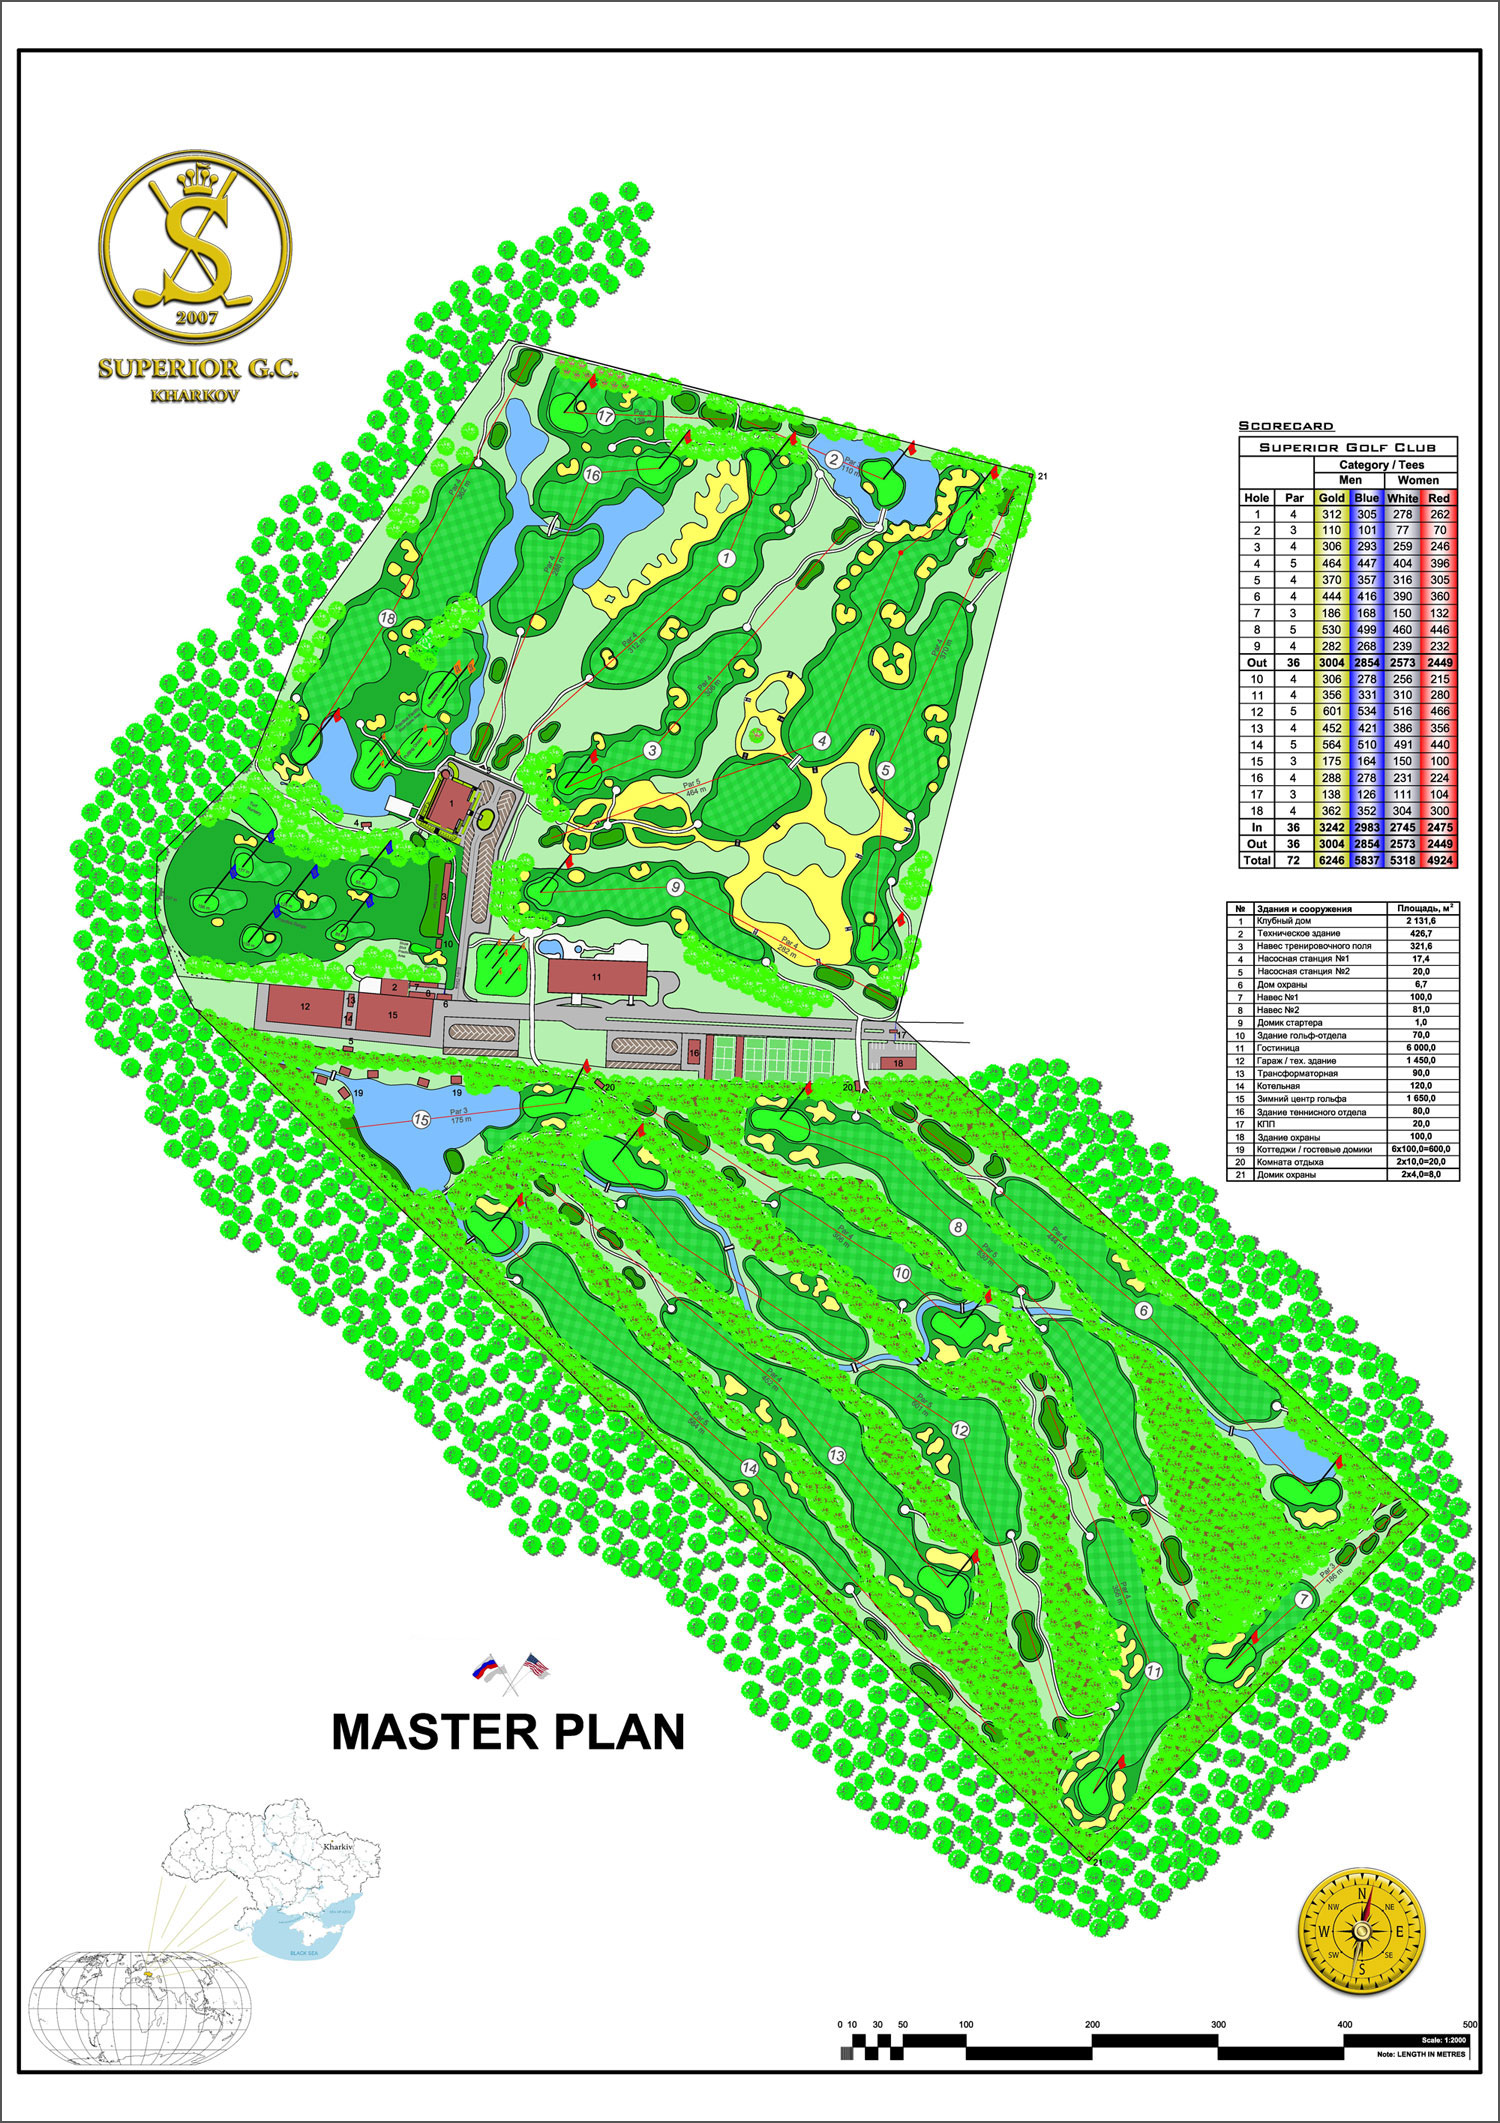 Master Plan of Superior Golf Club